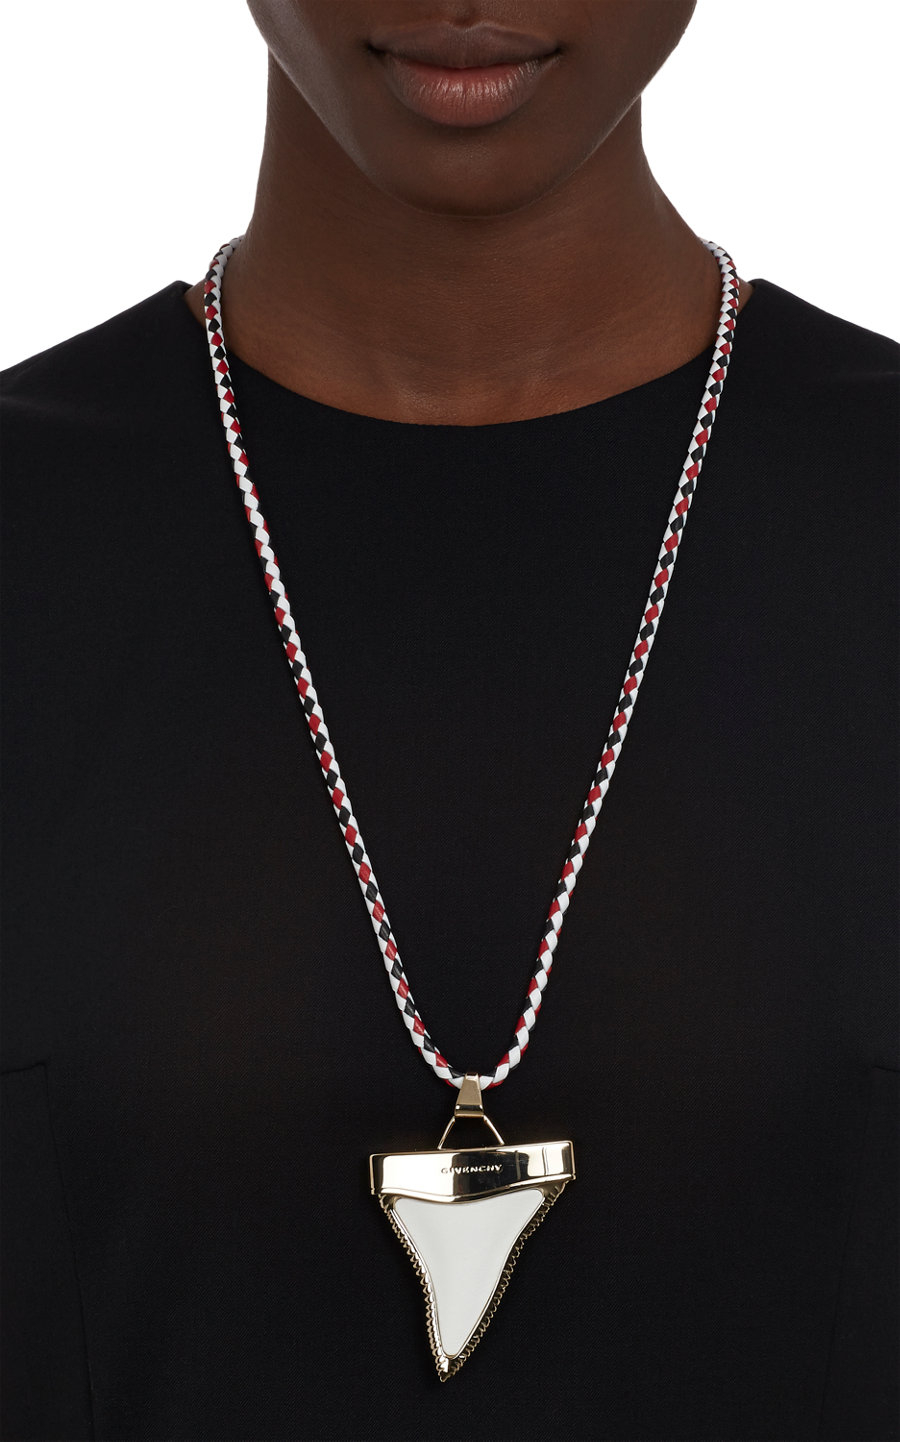 Givenchy leather bolotie necklace with sharks tooth pendant in white gallery aloadofball Gallery